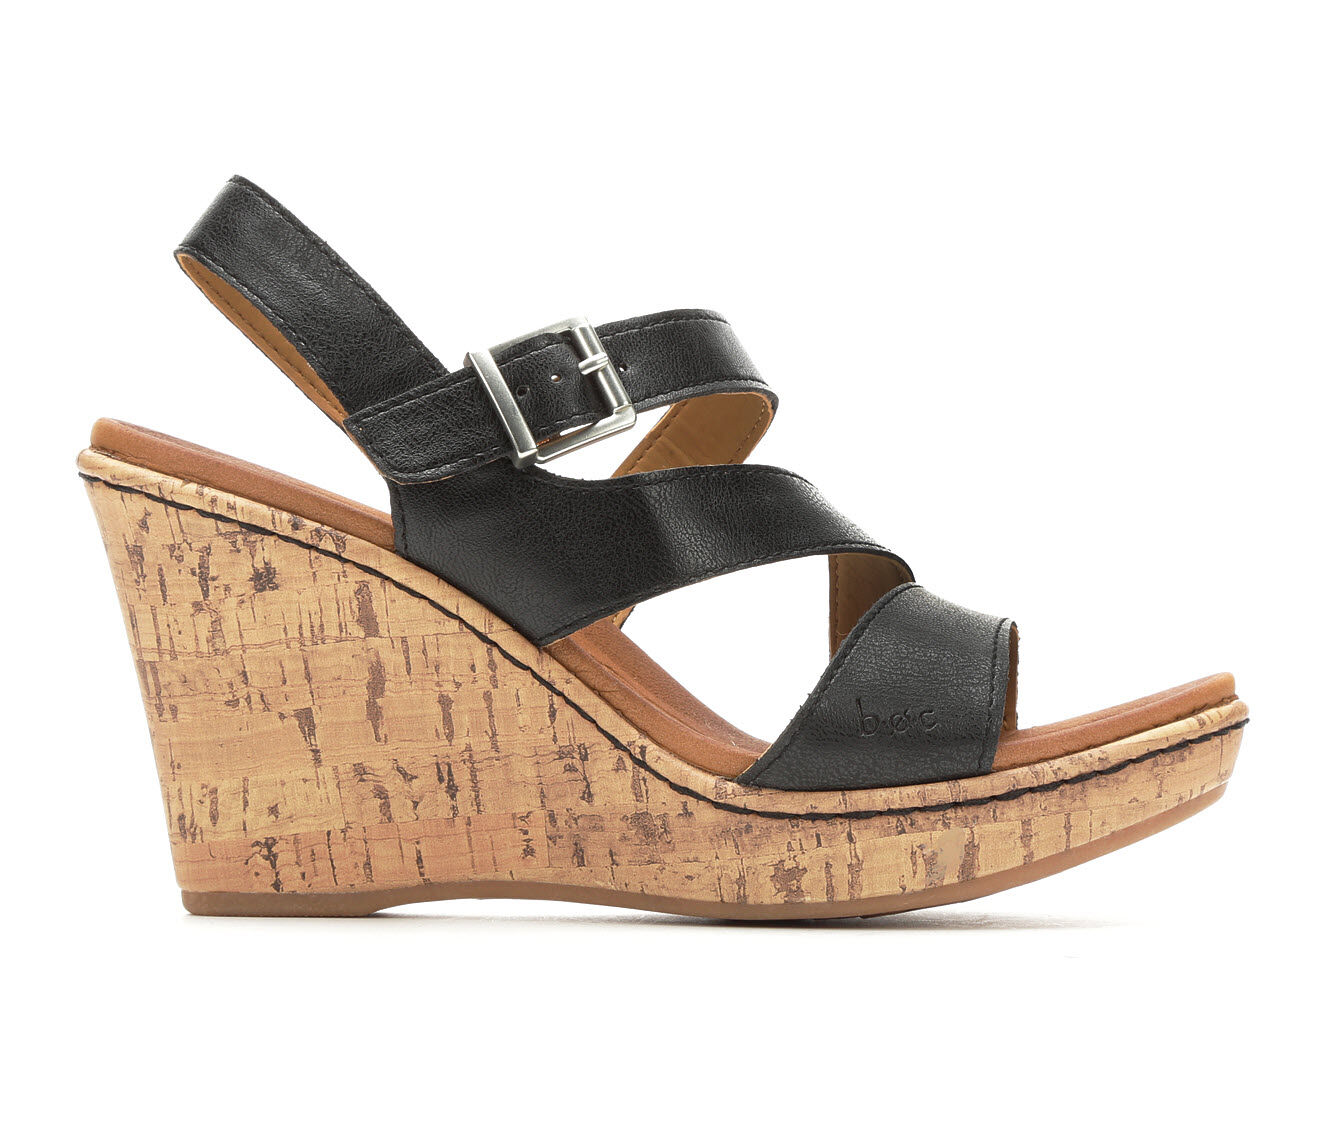 cheapest latest style Women's B.O.C. Schirra Wedges Black